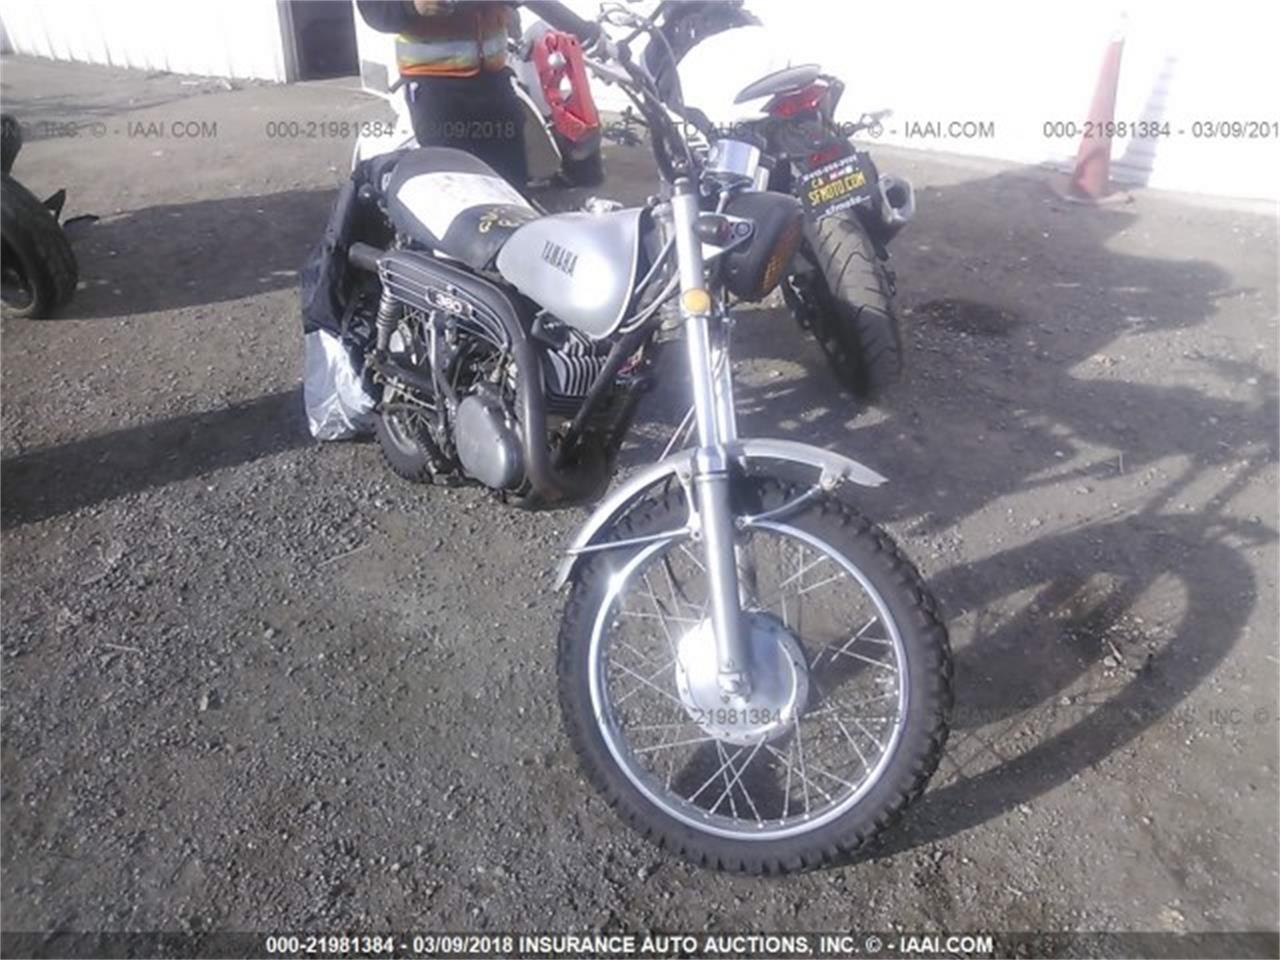 1972 yamaha rt2 for sale classiccars cc 1073840 Yamaha Ltmx large picture of 72 rt2 n0kw